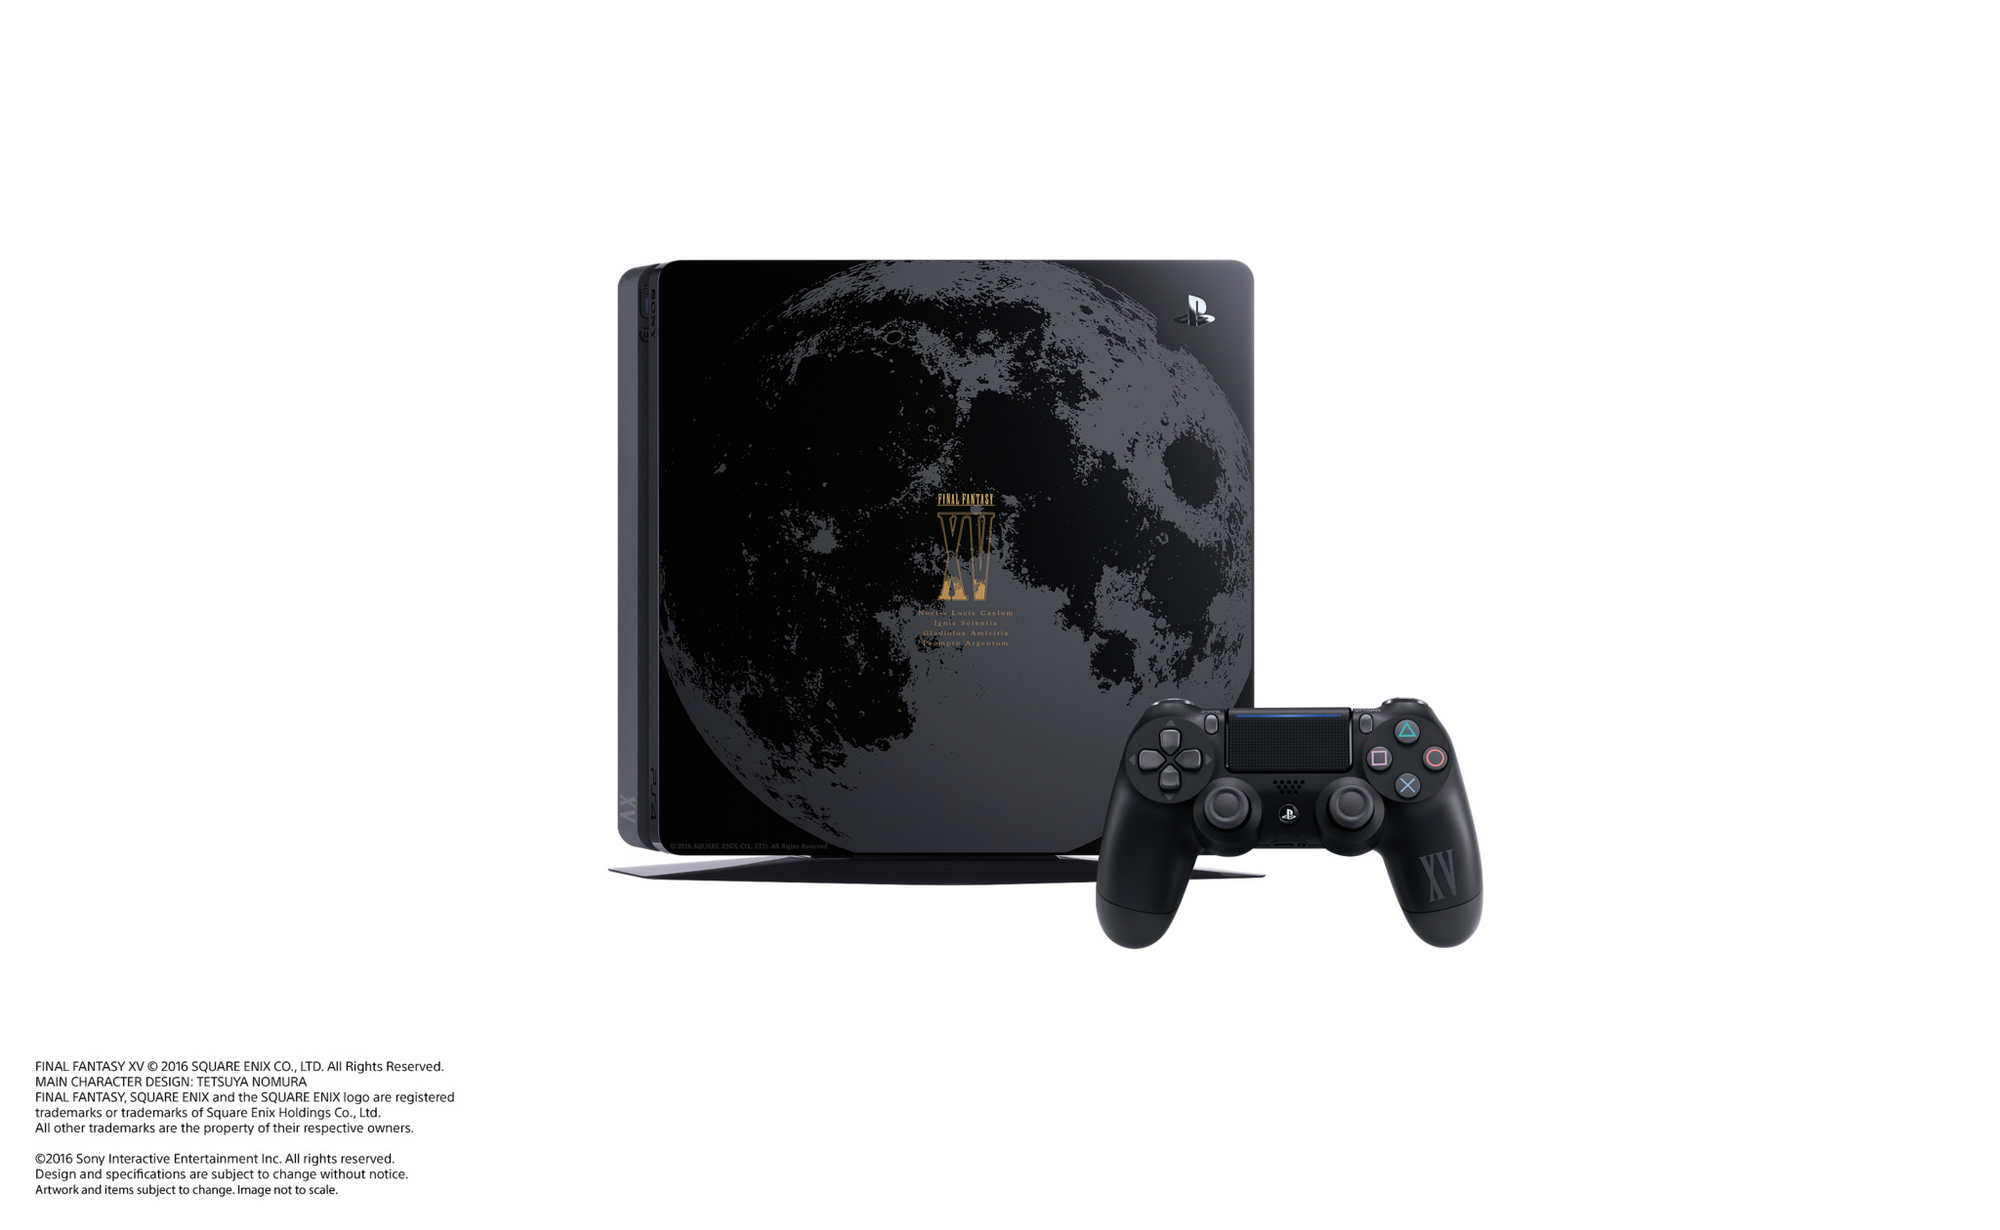 Google themes anime one piece - Us Special Edition Playstation 4 Slim